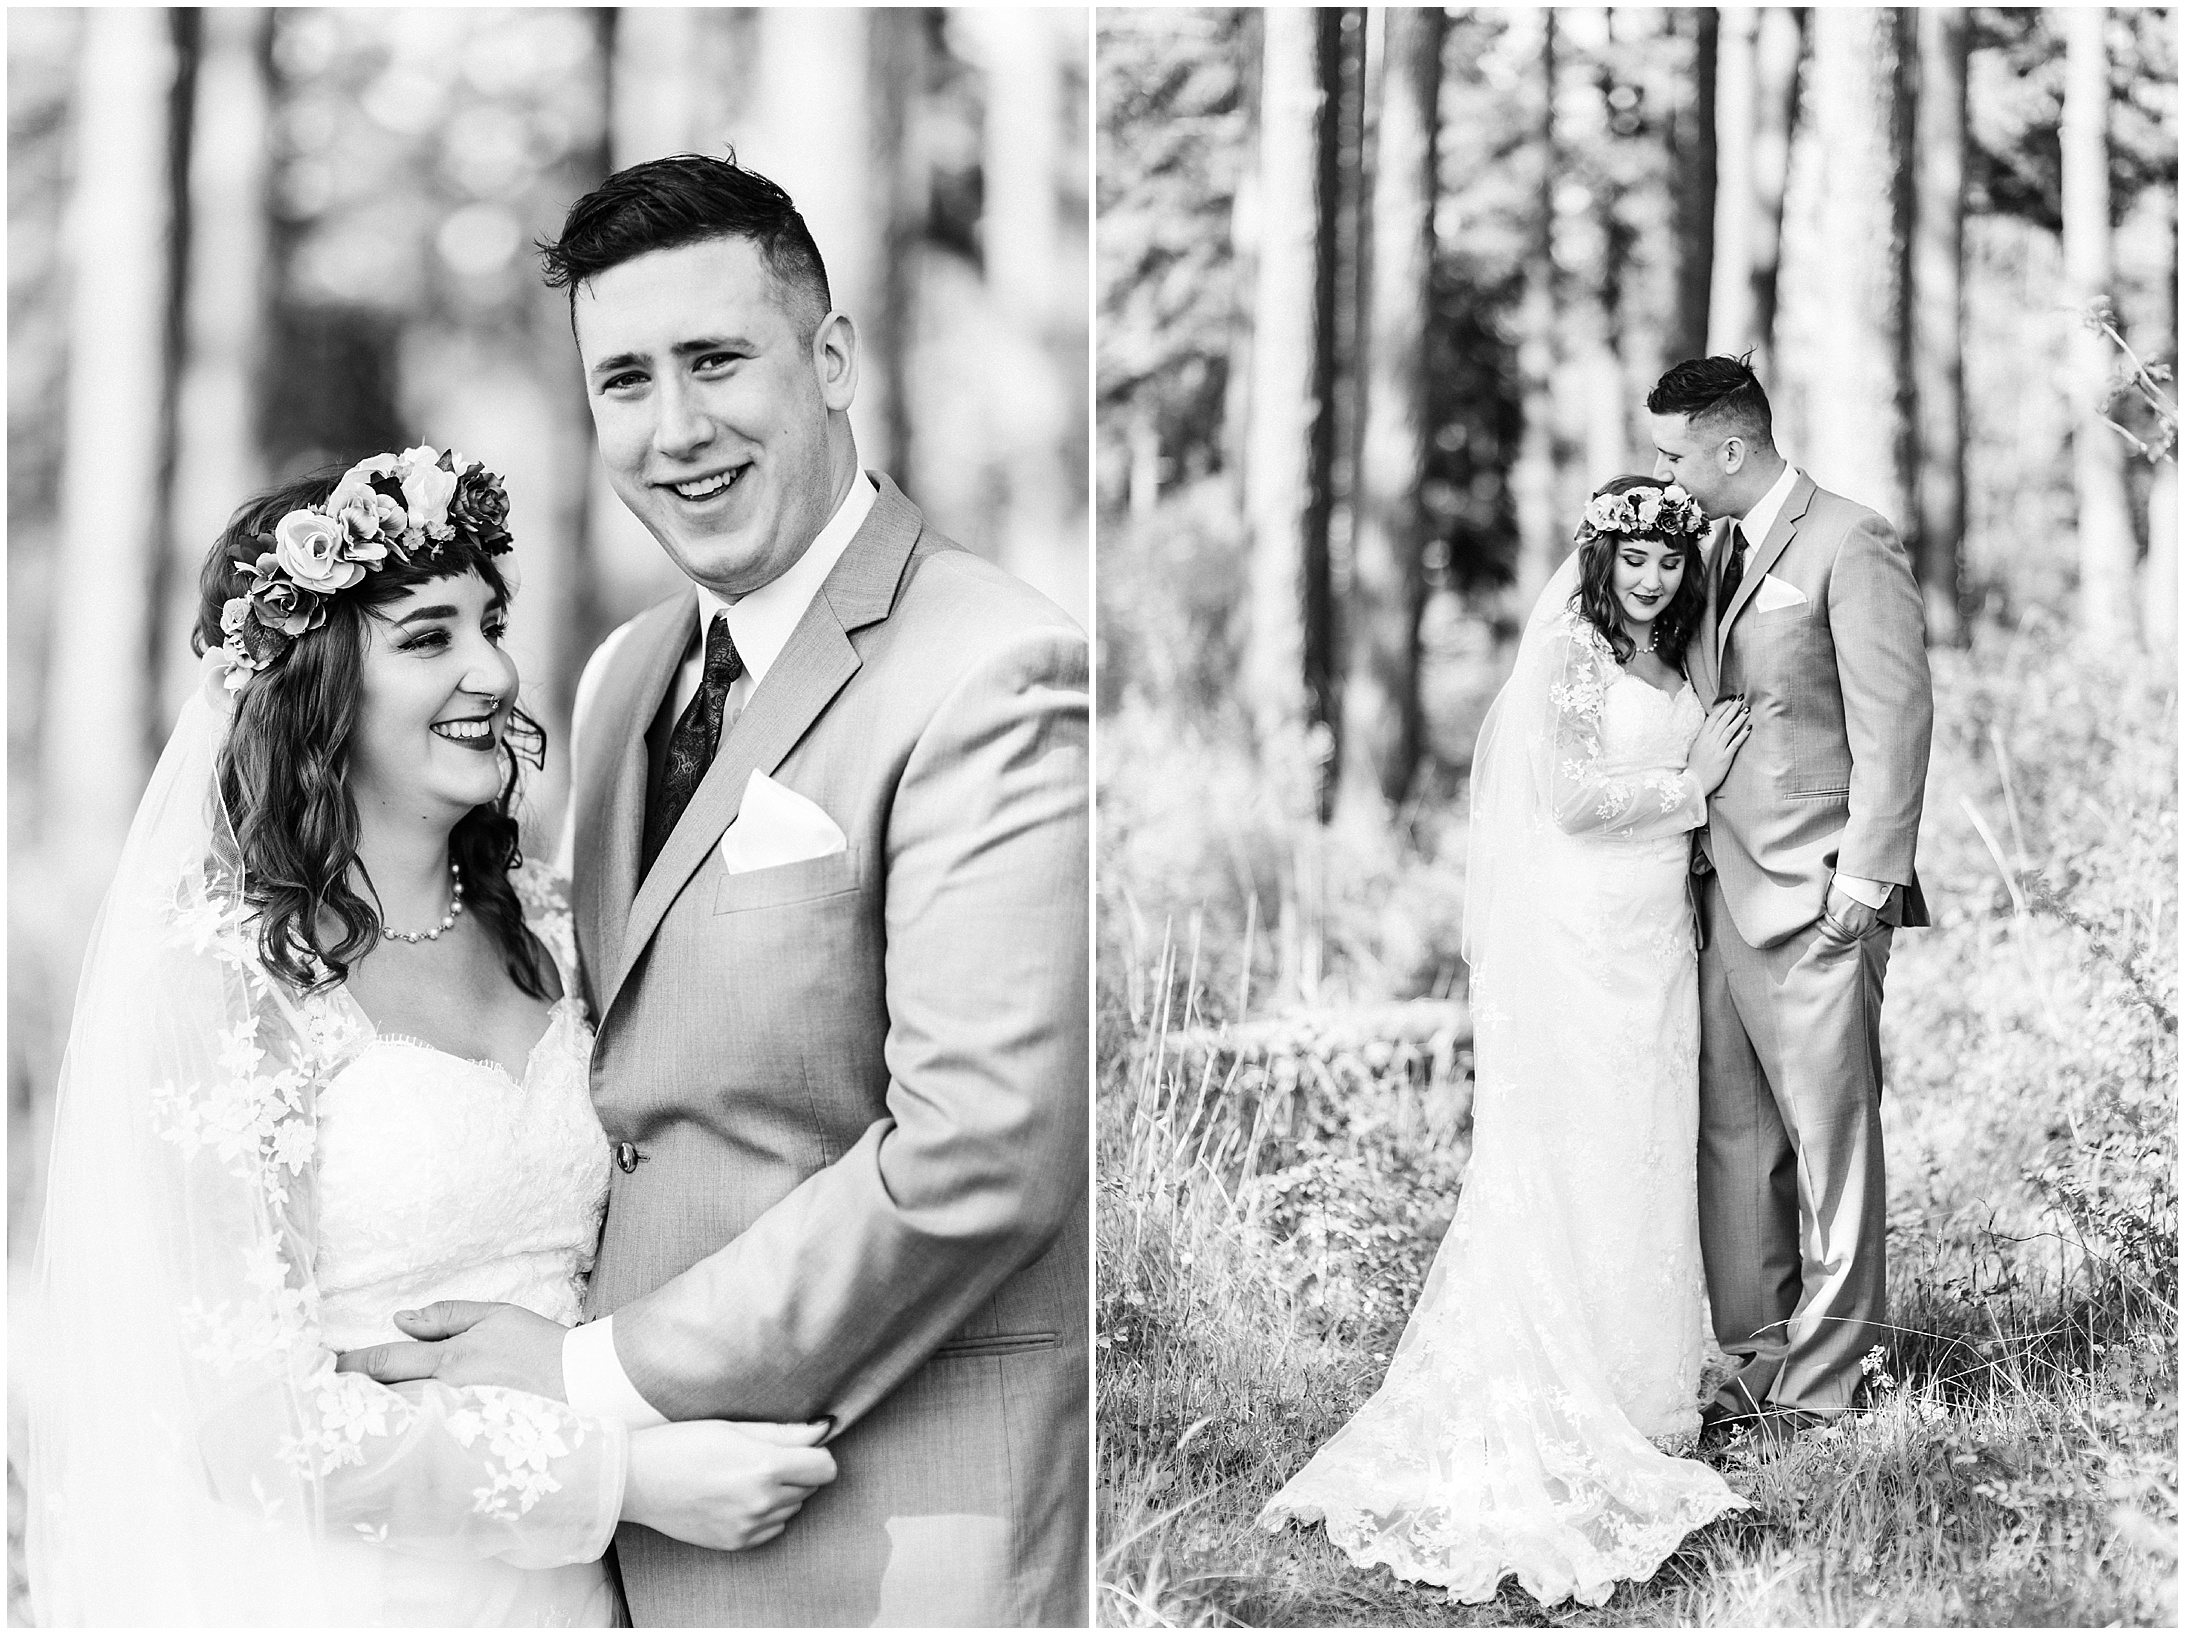 Black and white diptych of a bride and groom in Bayview, WA